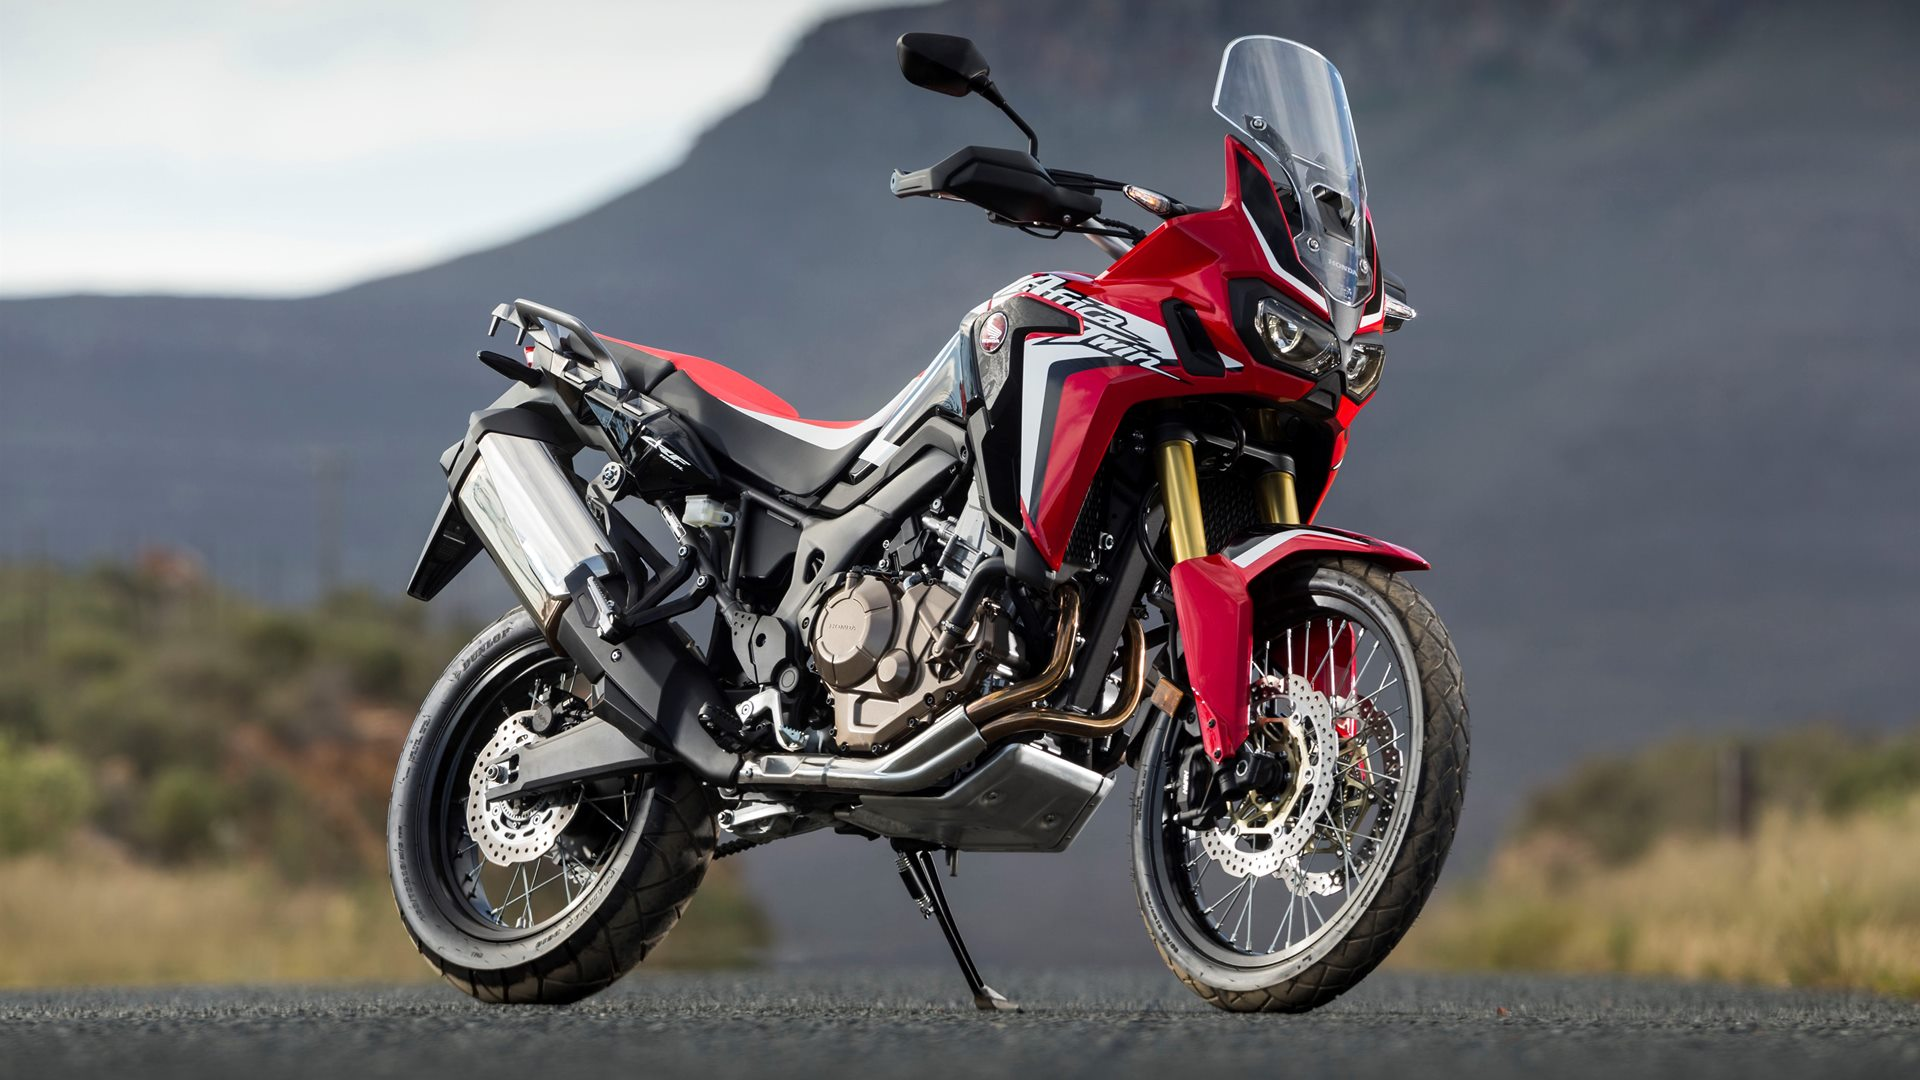 Honda CRF1000L Africa Twin Launched At 12.90 Lakh